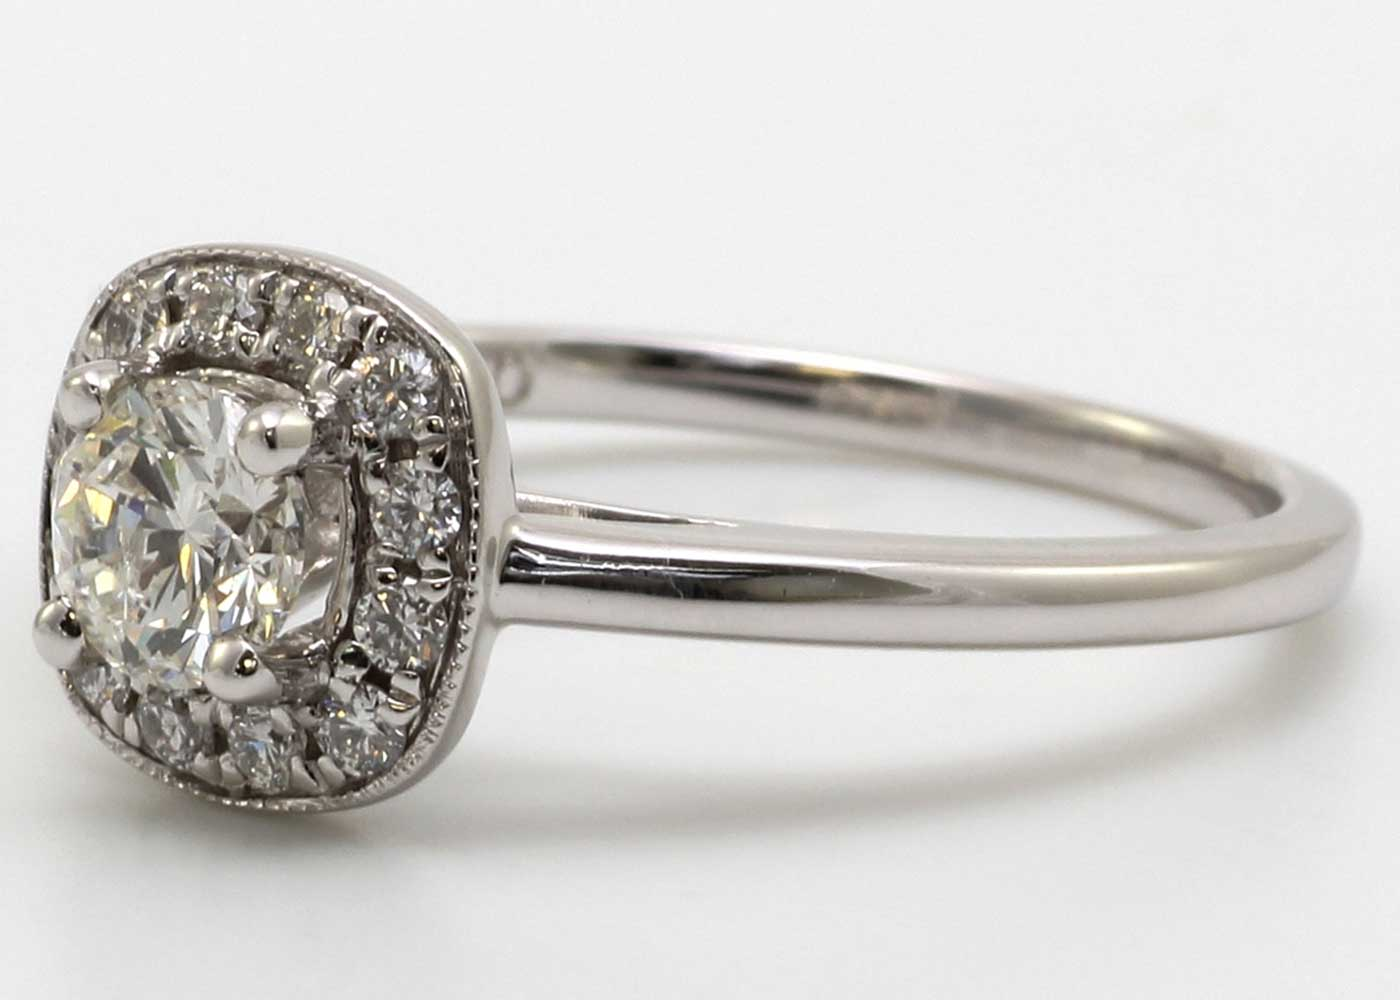 Lot 22 - 18ct White Gold Diamond Ring With Halo Setting 0.69 Carats